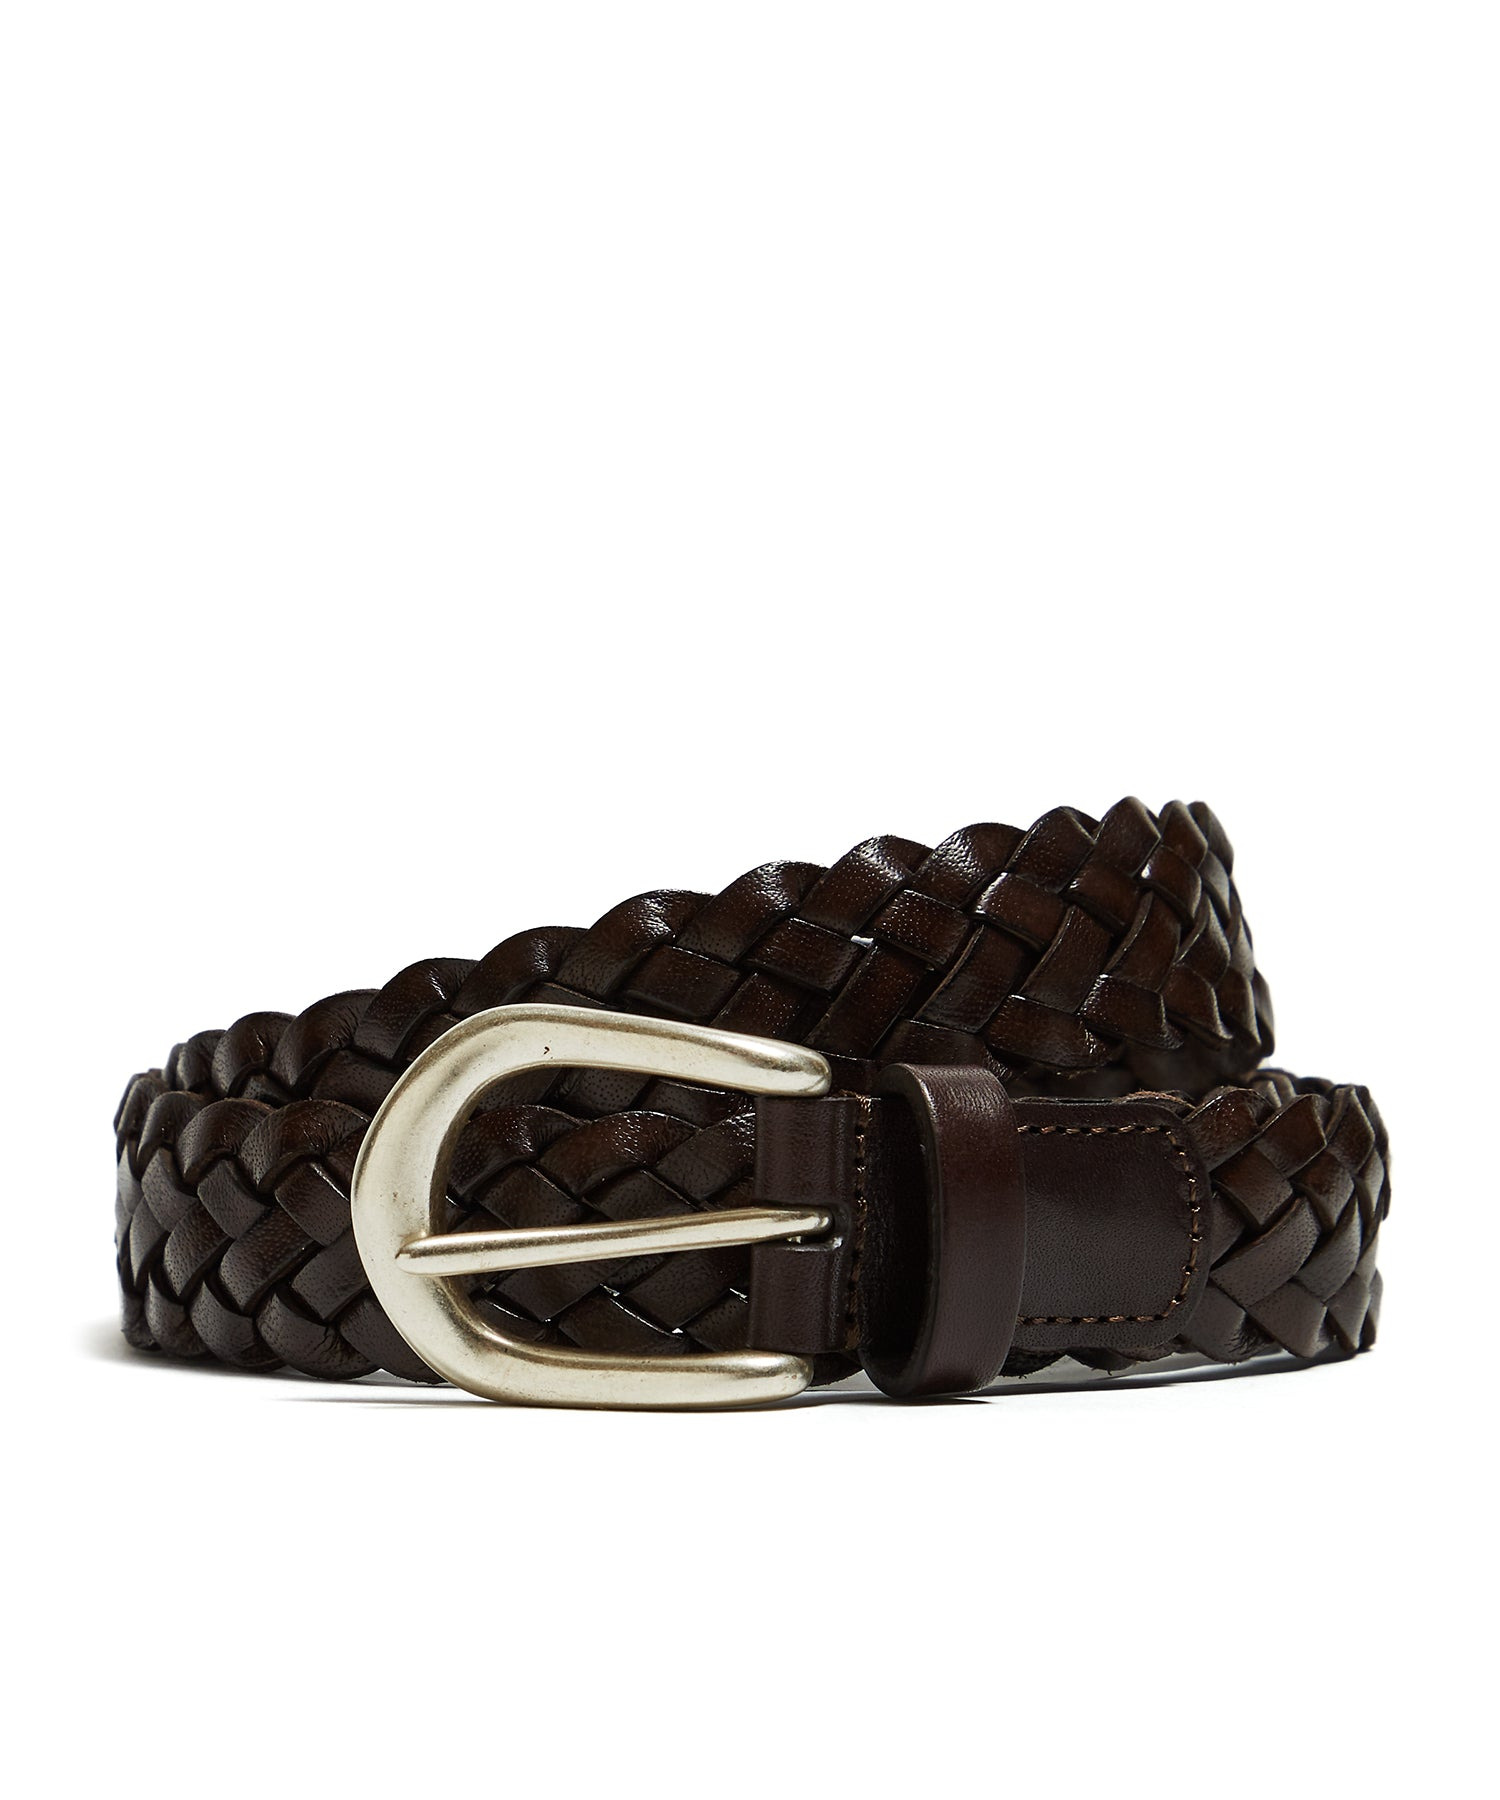 Anderson's Woven Leather Belt in Brown